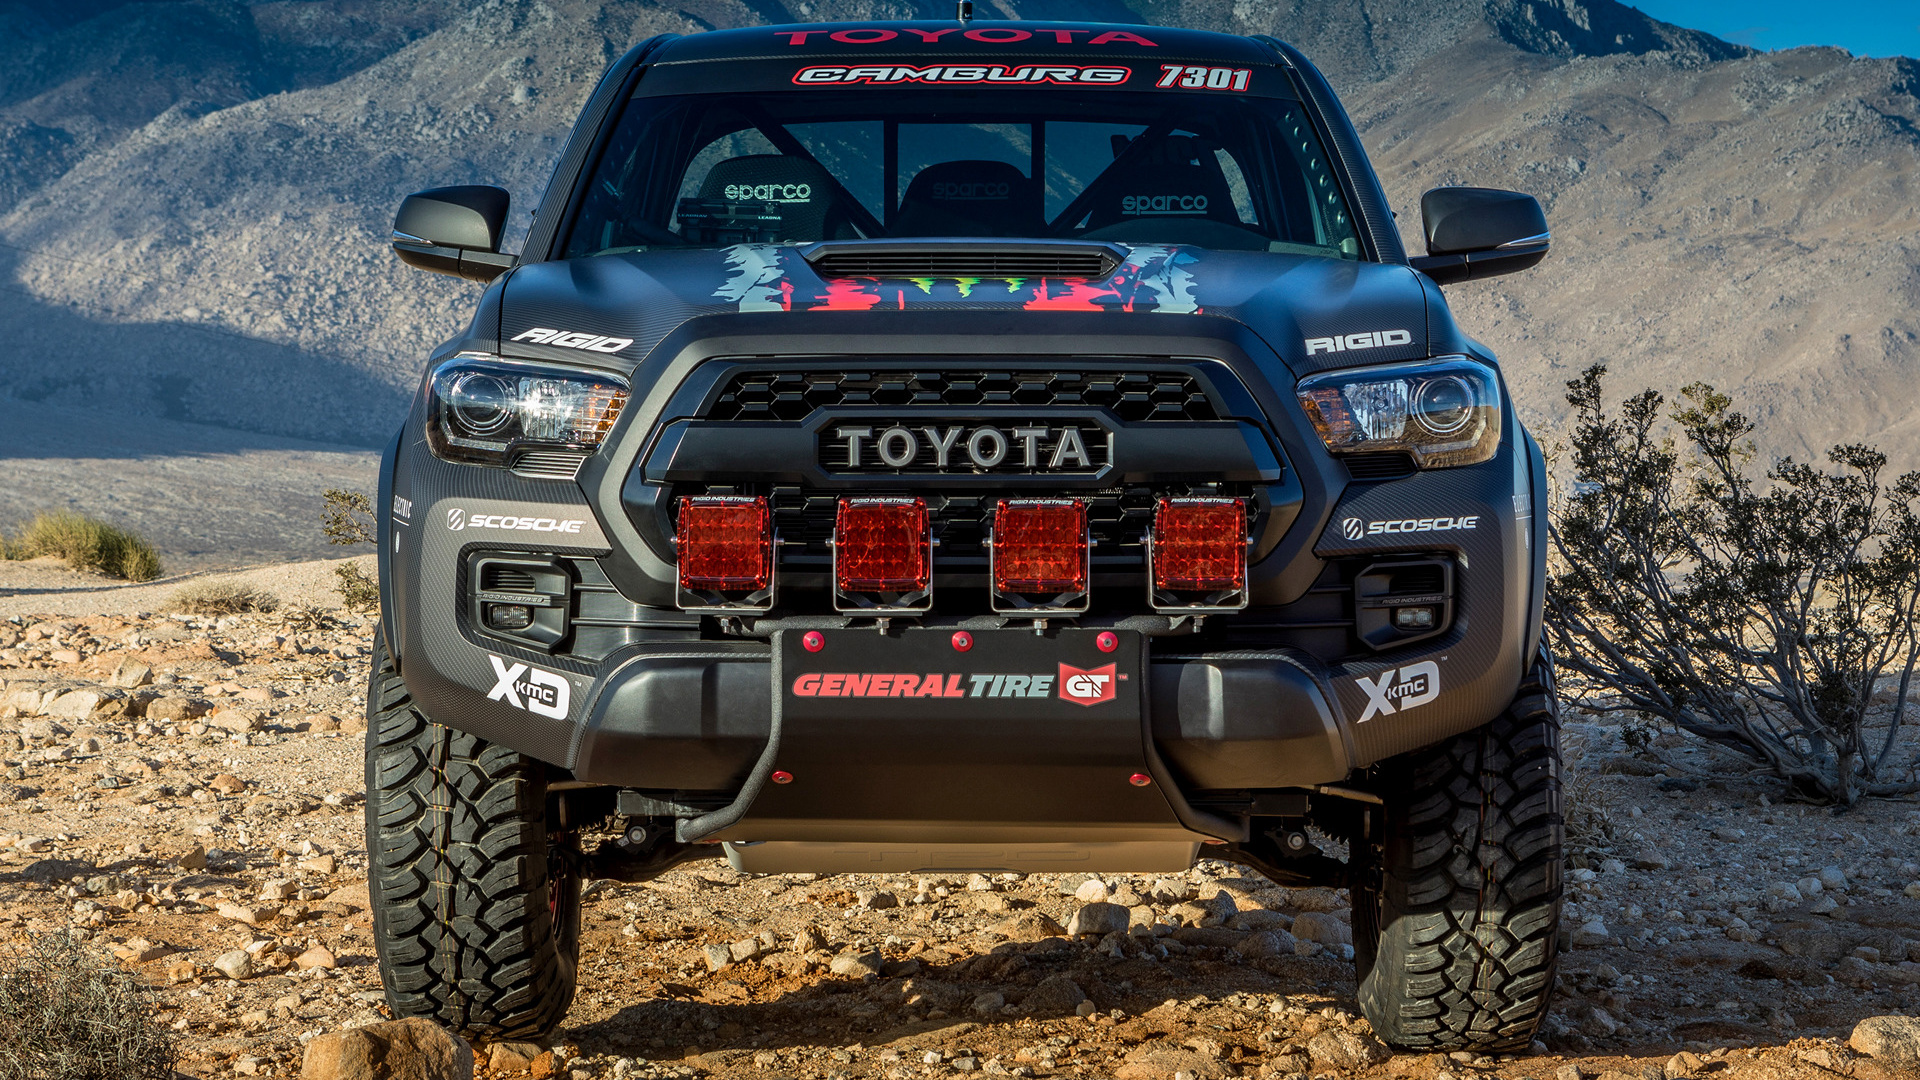 2016 Toyota Tacoma Trd Off Road >> Toyota Tacoma TRD Pro Race Truck (2016) Wallpapers and HD ...